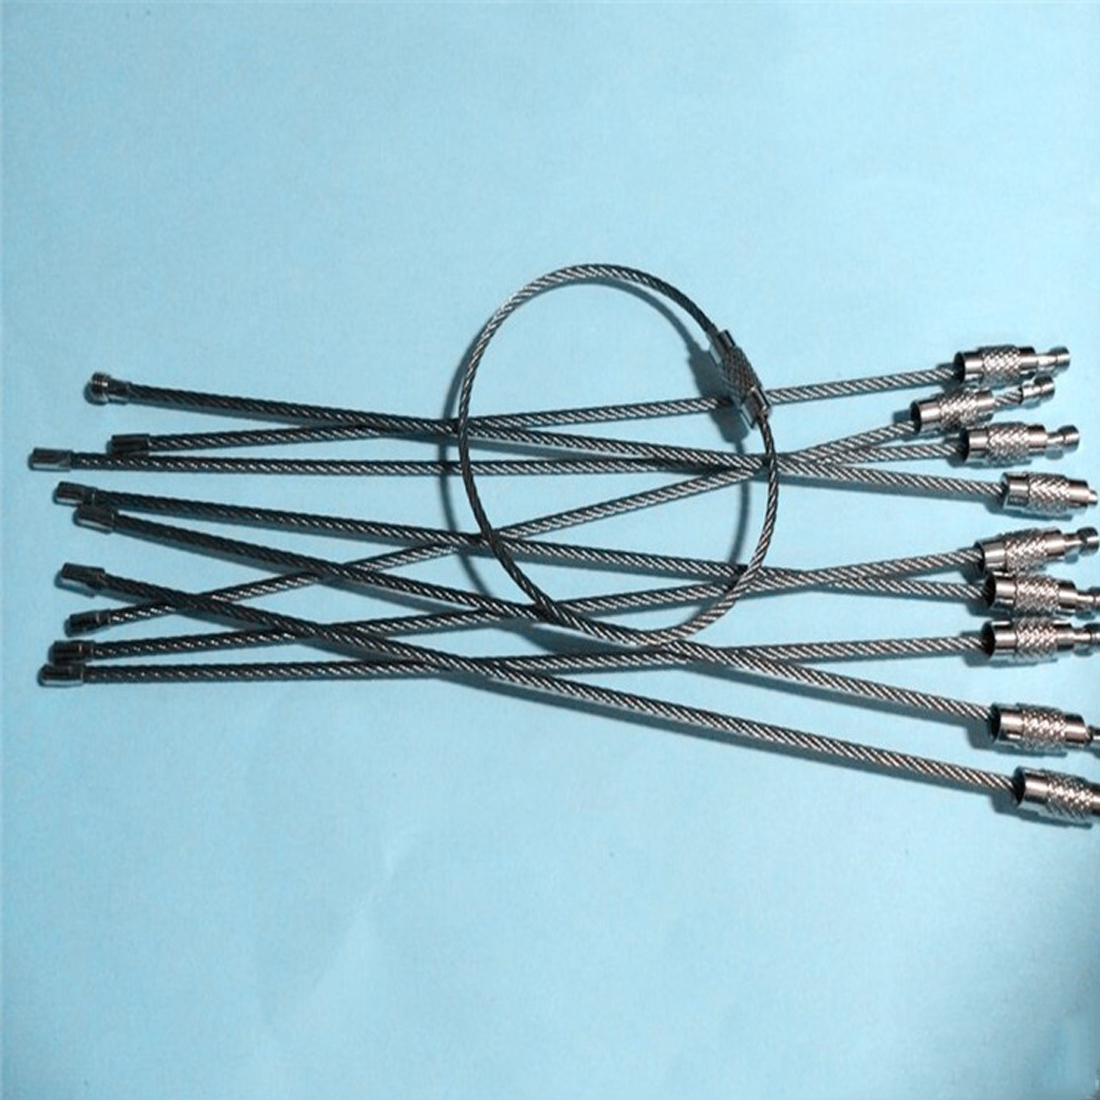 Hot Sale 5Pcs Stainless Steel Wire Keychain Ring Key Keyring Circle Rope Cable Loop Outdoor Camp Luggage Tag Screw Lock Gadget